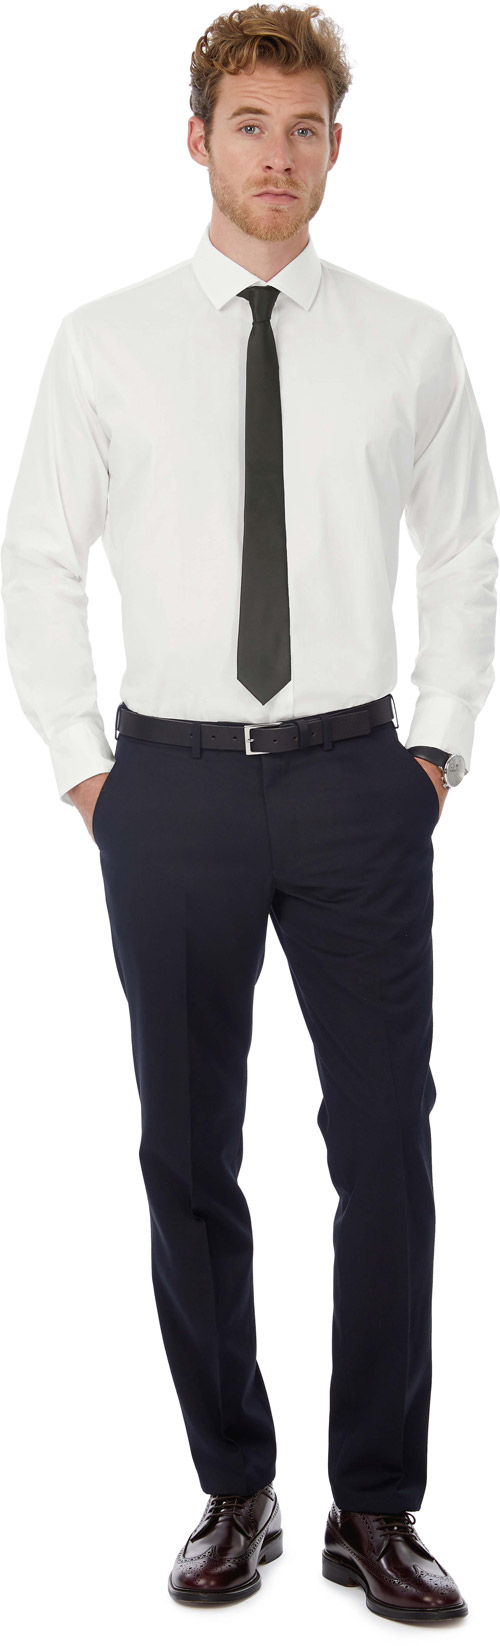 Chemise stretch homme manches longues black tie